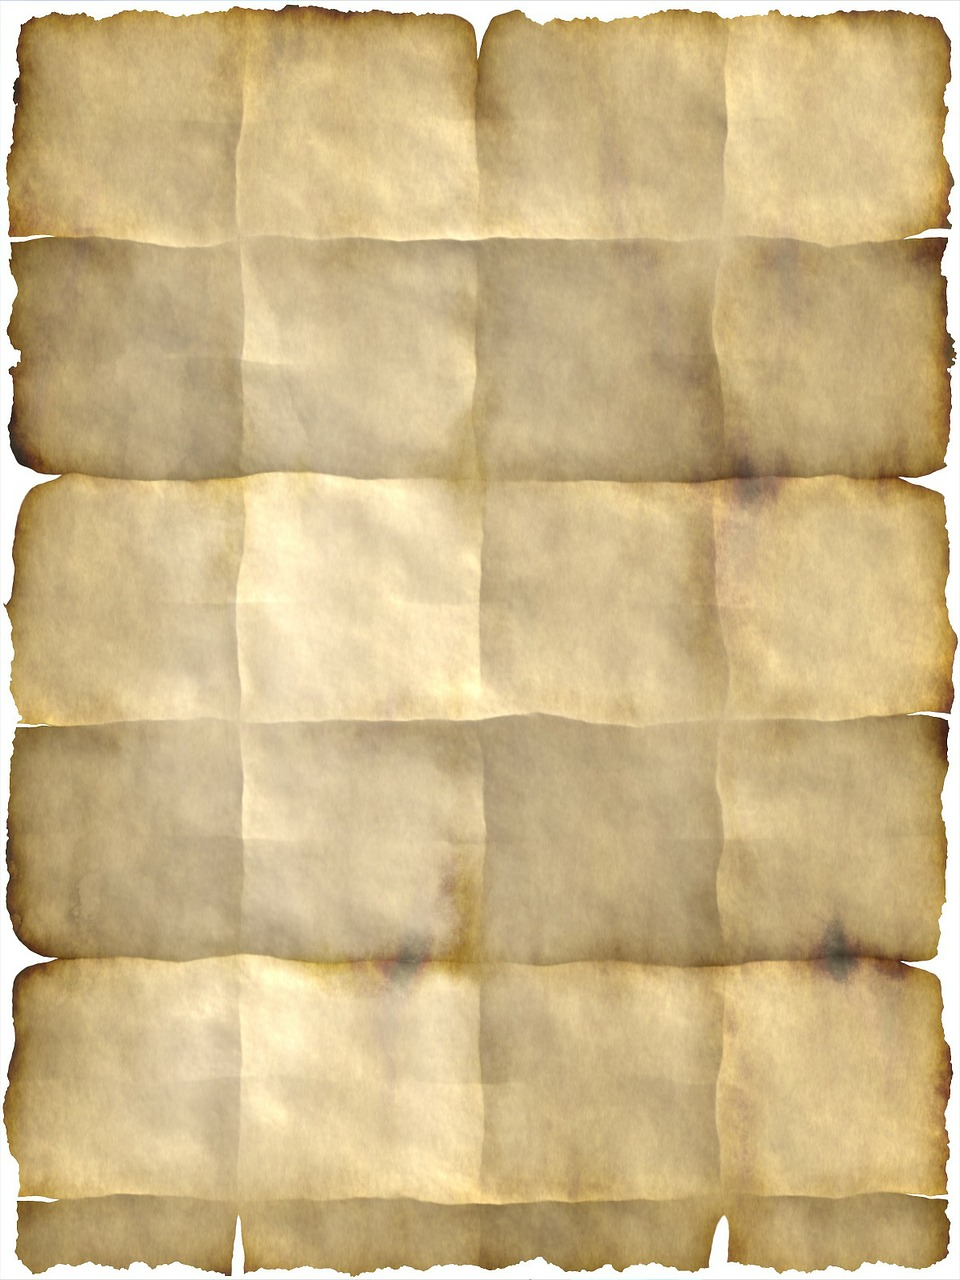 paper stationery parchment free picture